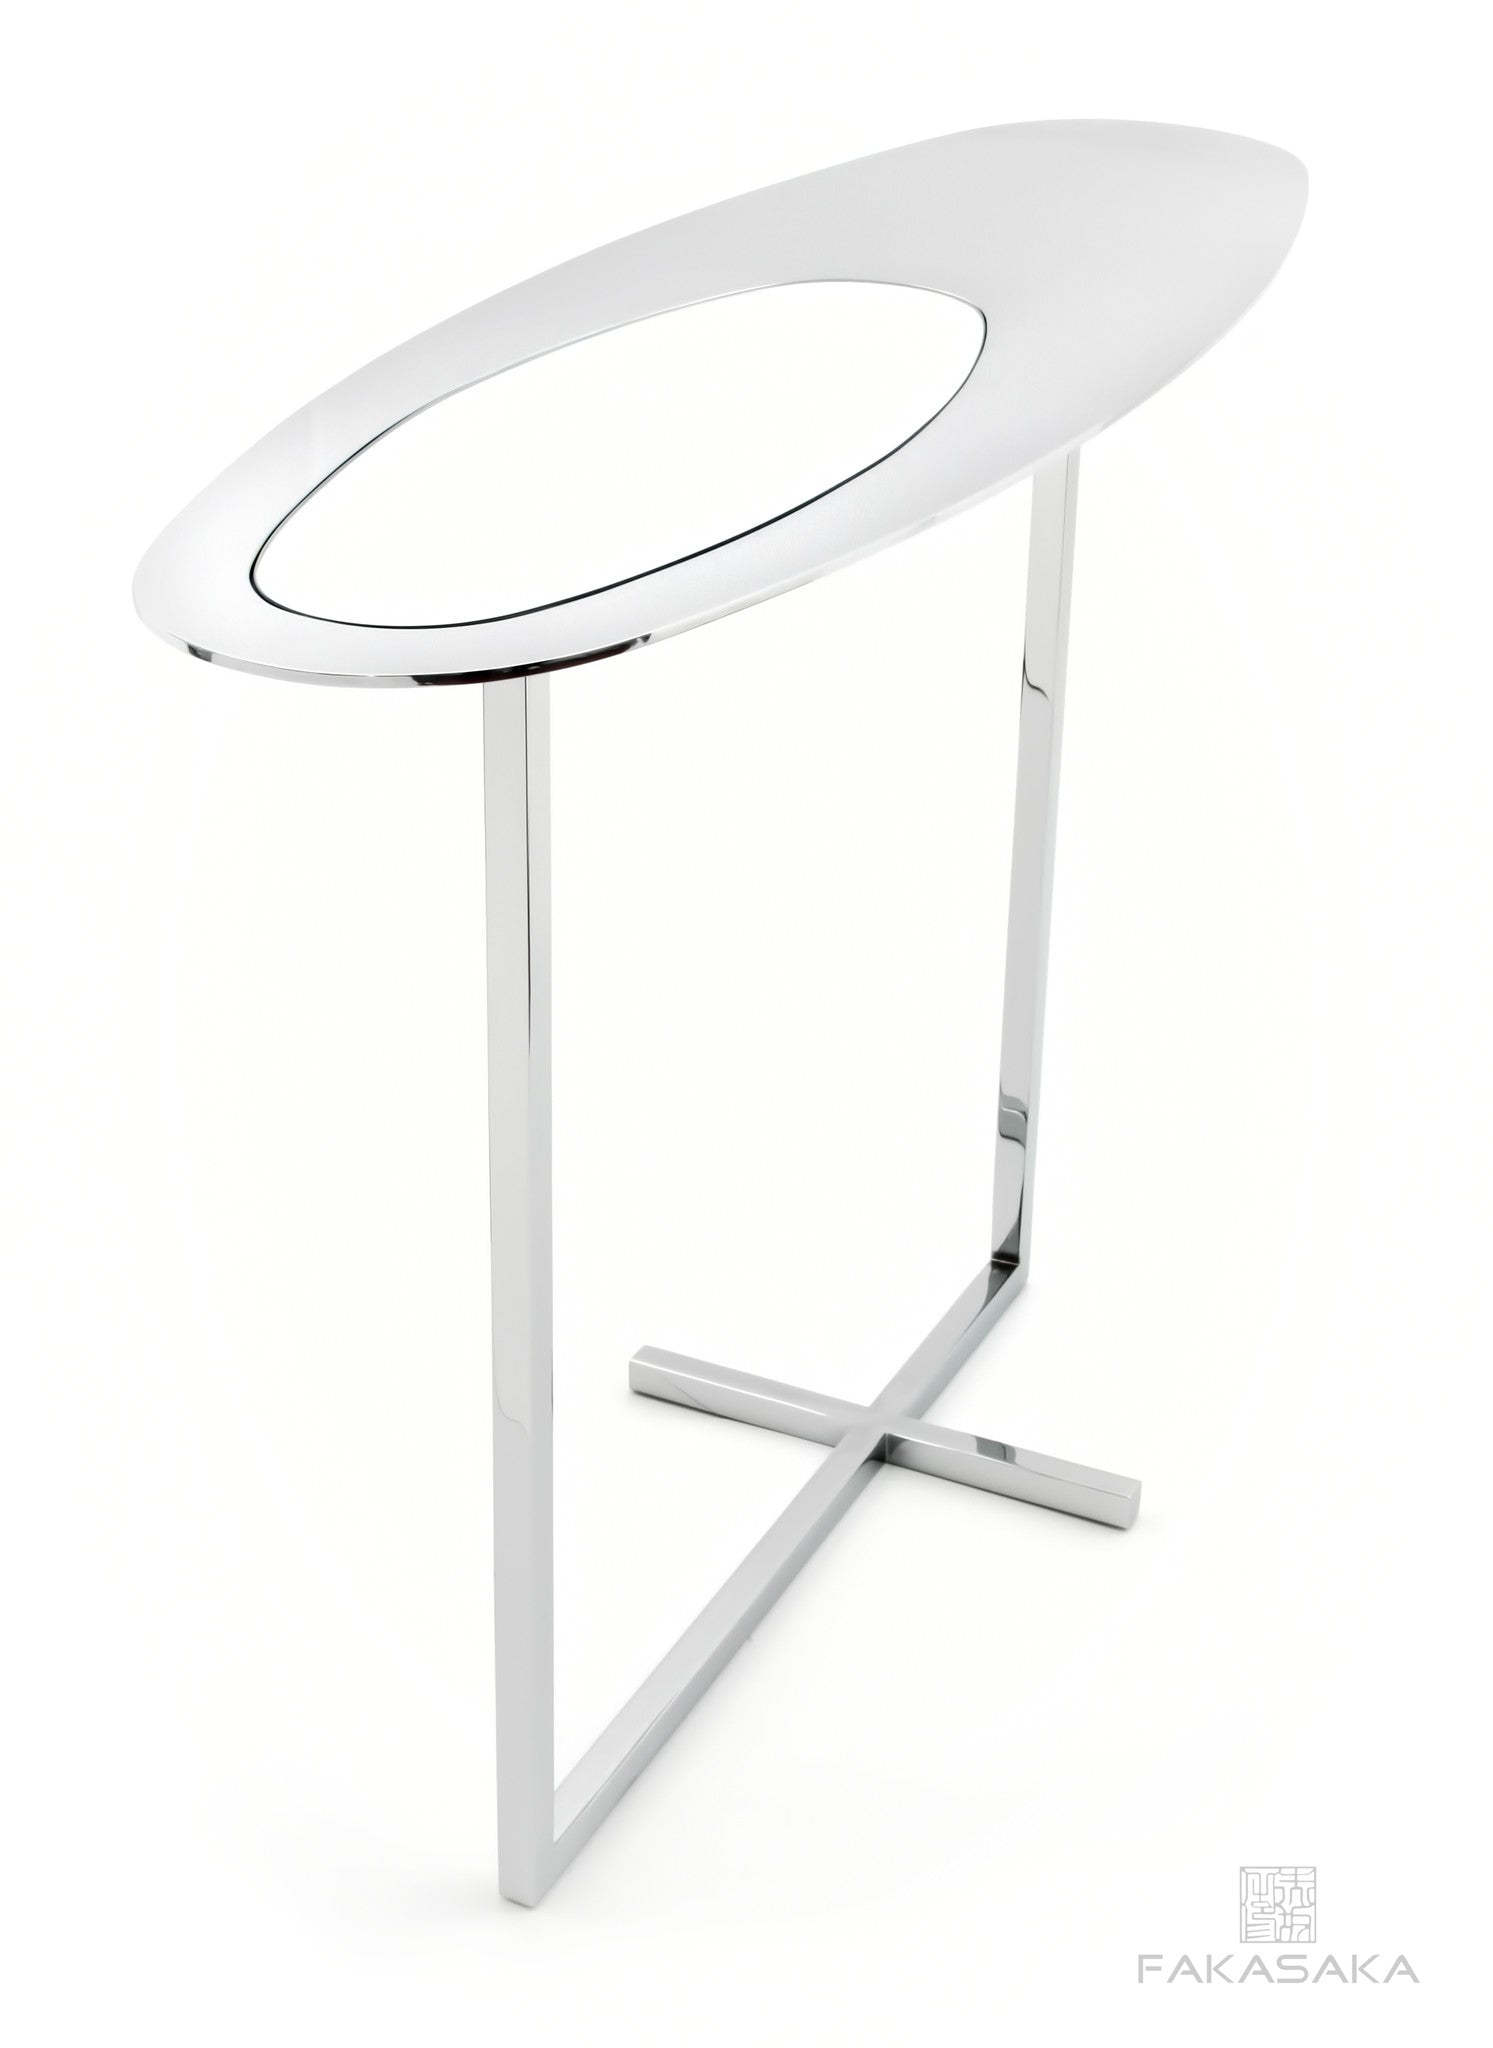 FA24 SIDE TABLE / DRINK TABLE<br><br>MIRROR ON TOP<br>CHROMED